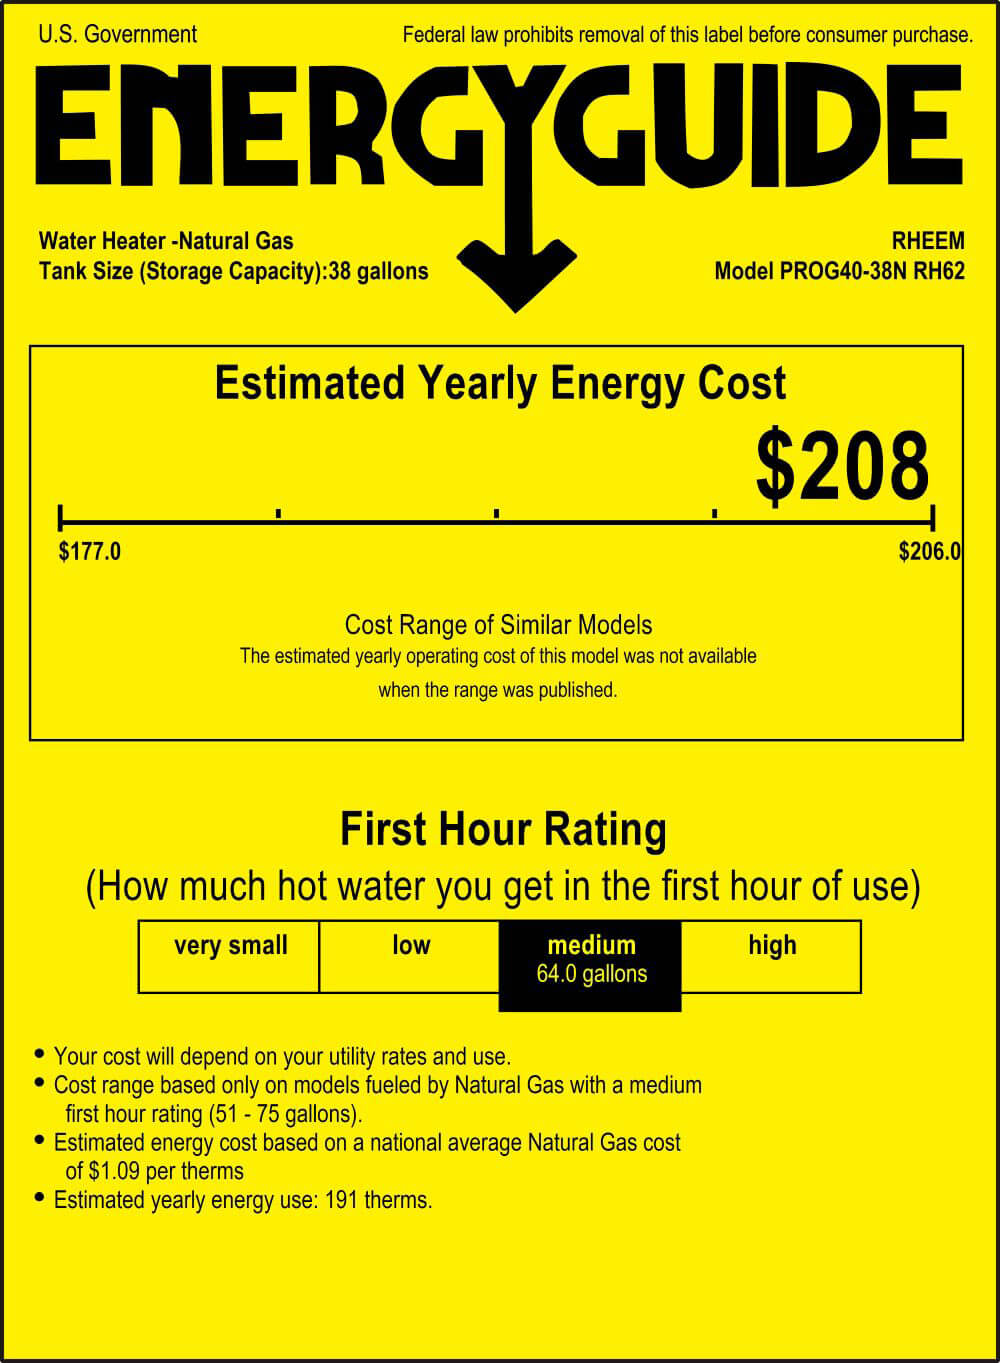 energy guide estimated yearly energy cost $208